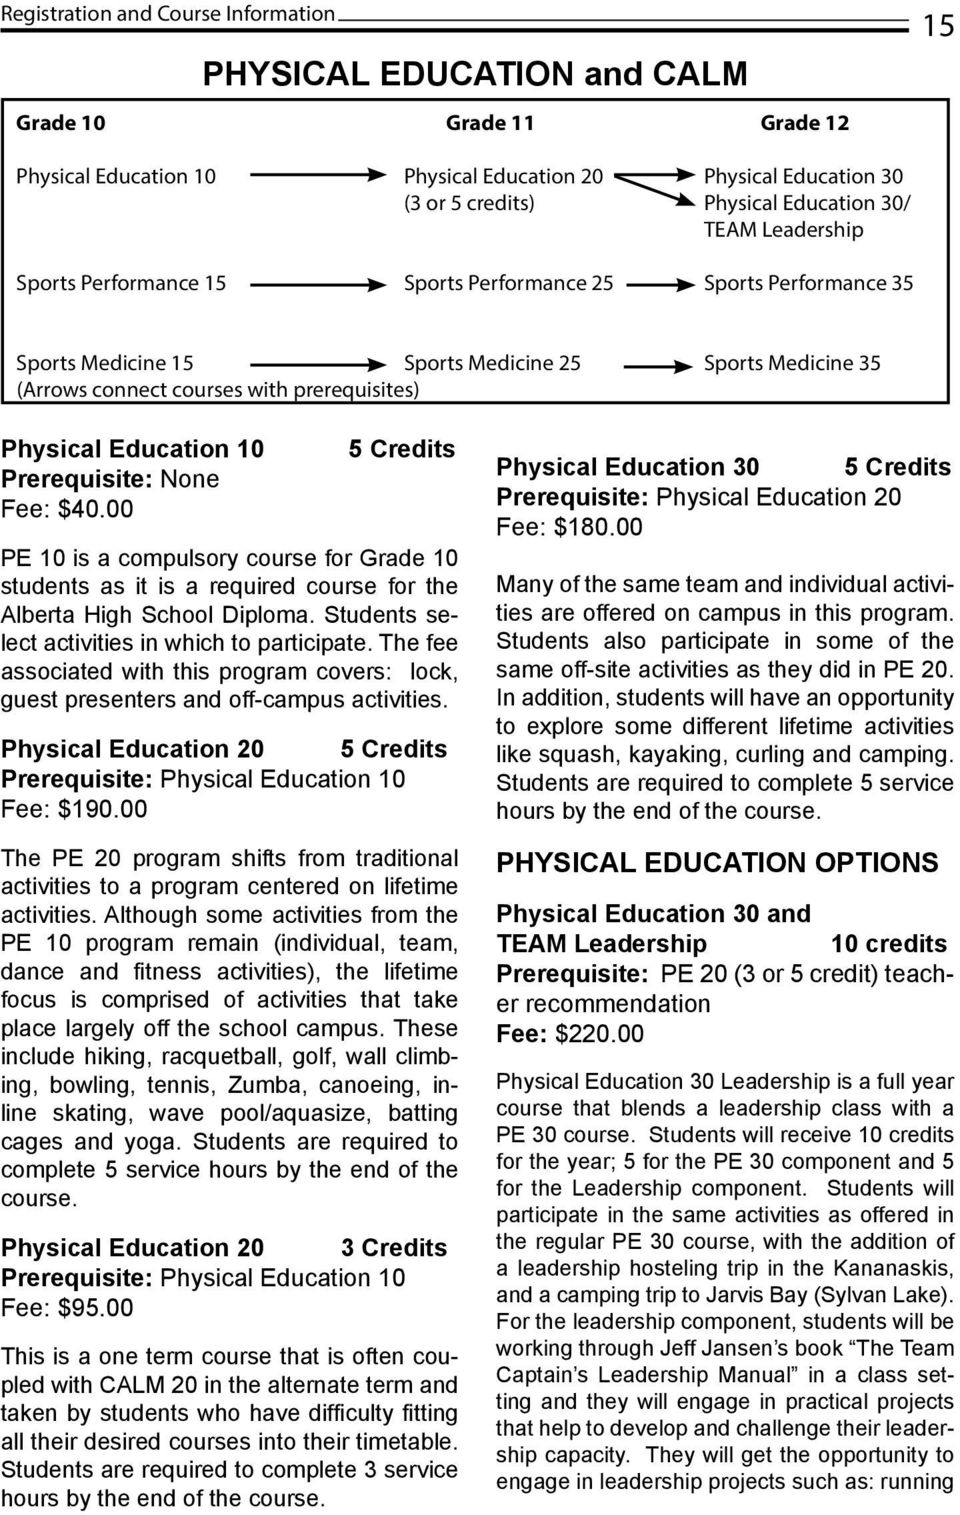 Education 10 Prerequisite: None Fee: $40.00 PE 10 is a compulsory course for Grade 10 students as it is a required course for the Alberta High School Diploma.